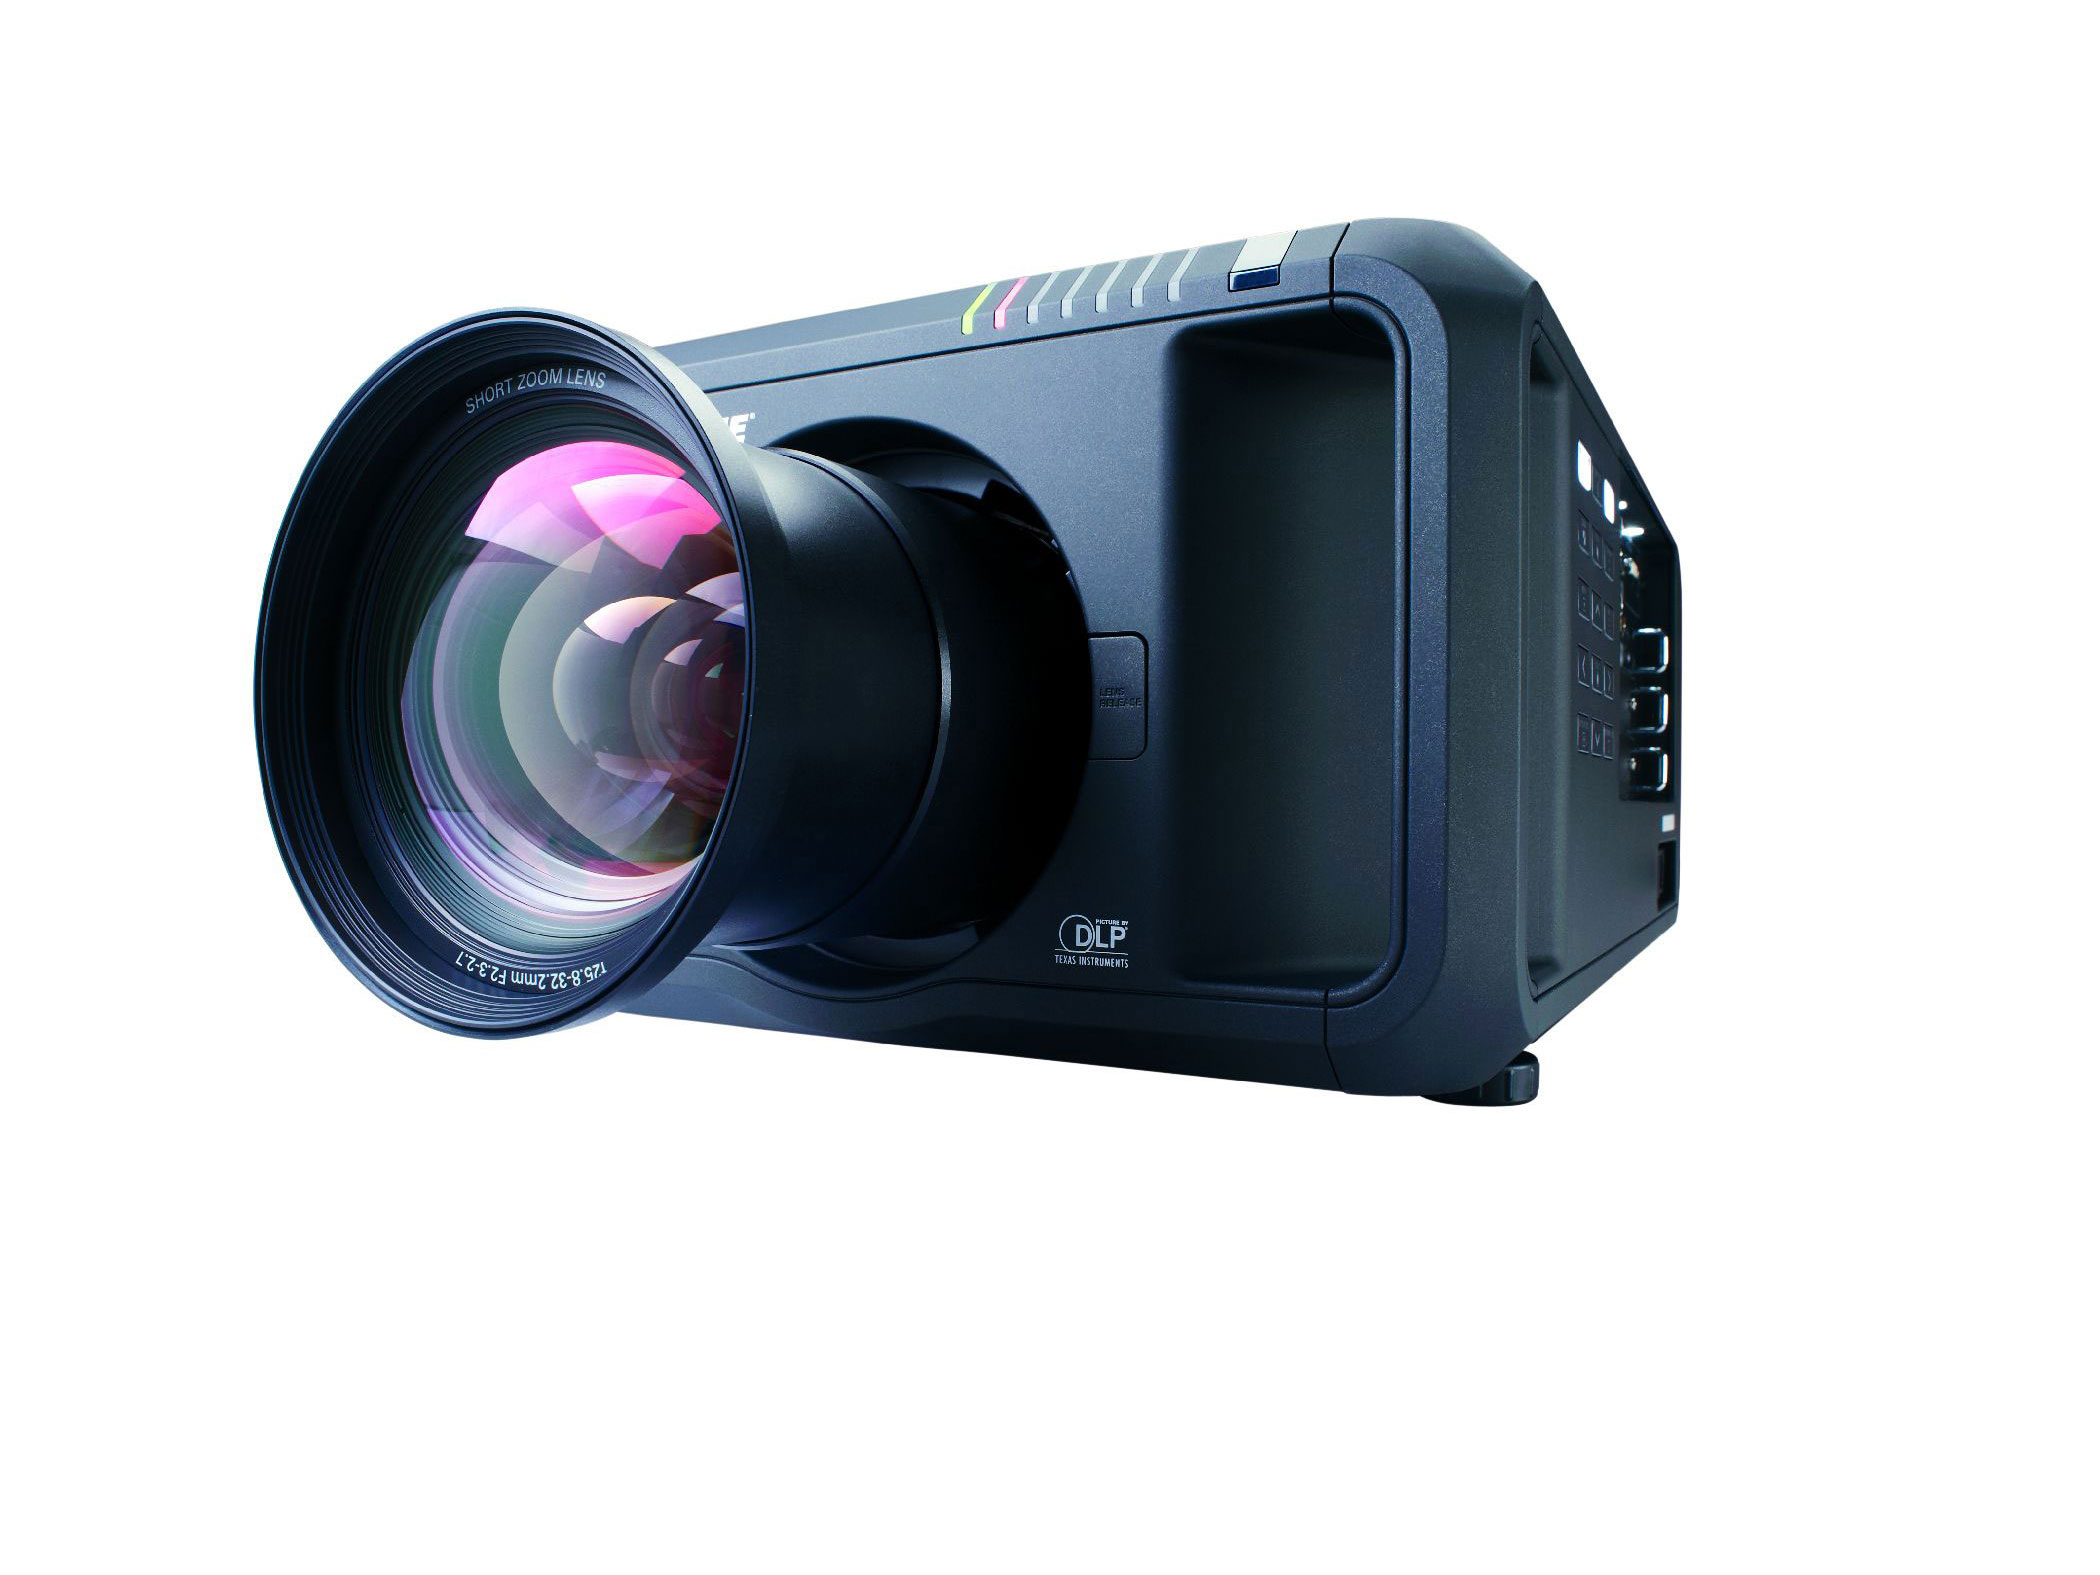 /globalassets/.catalog/products/images/christie-dhd800/gallery/christie-dhd800-digital-projector-image5.jpg